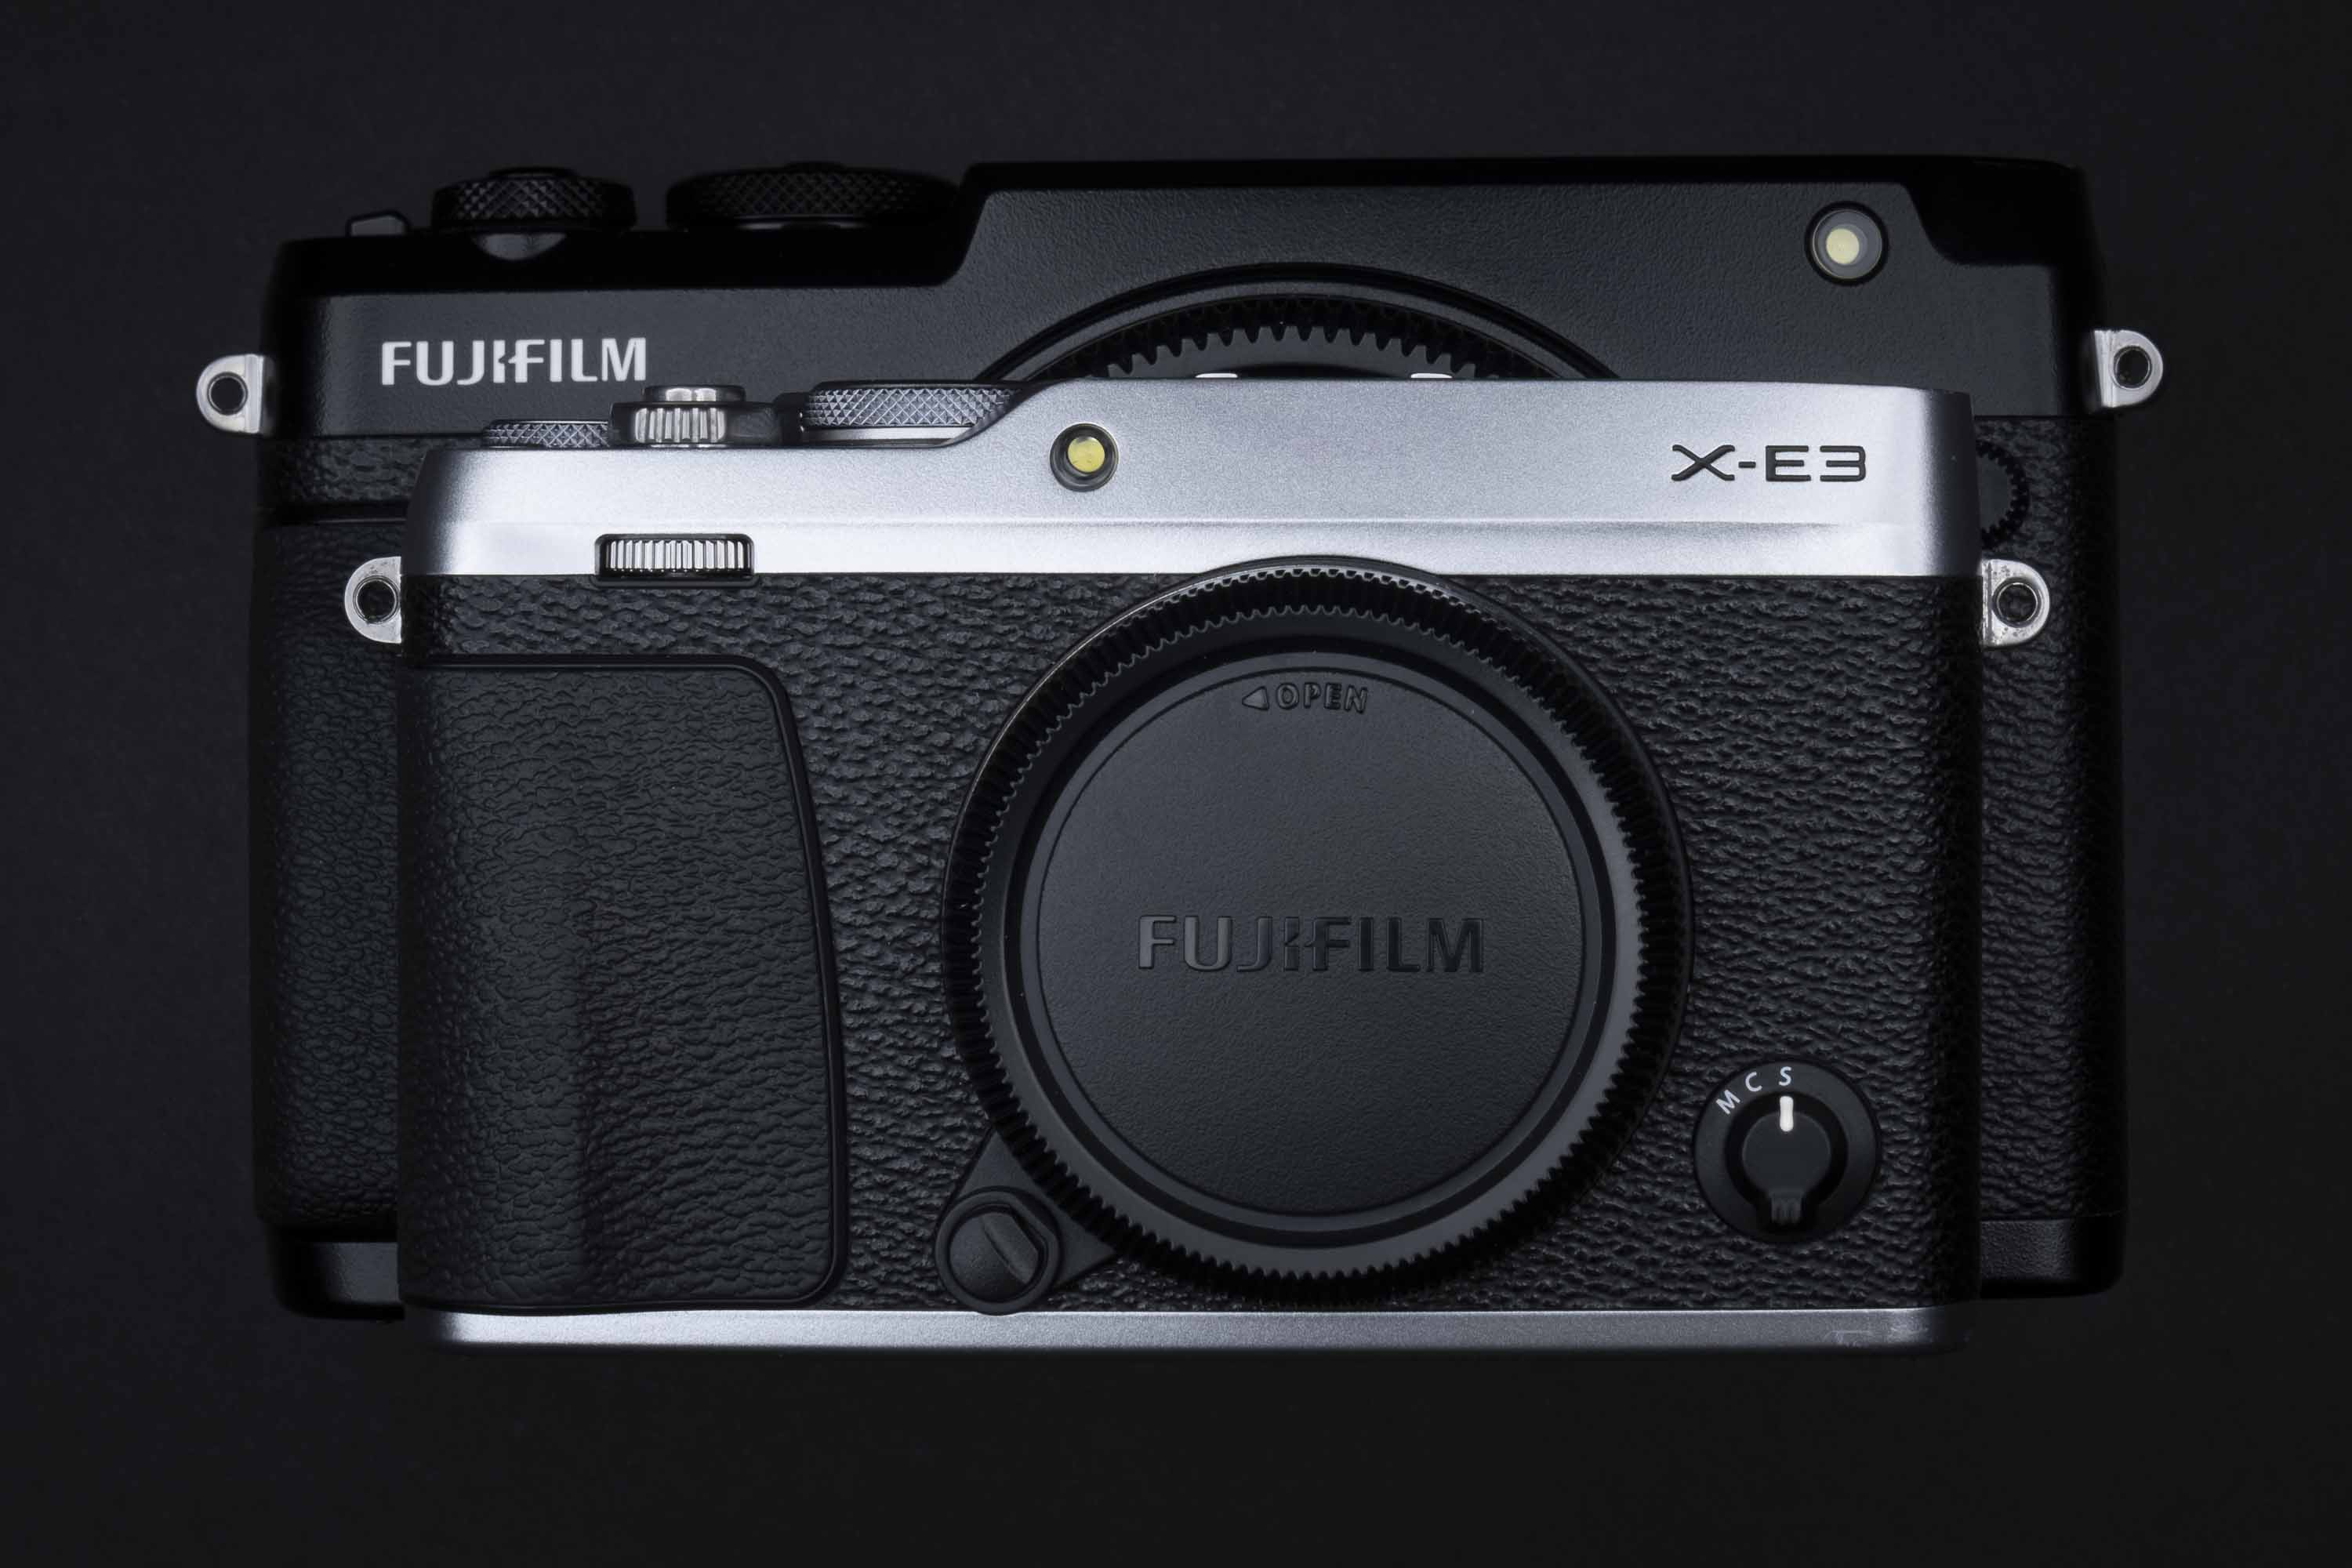 FUJIFILM GFX 50R Camera Review